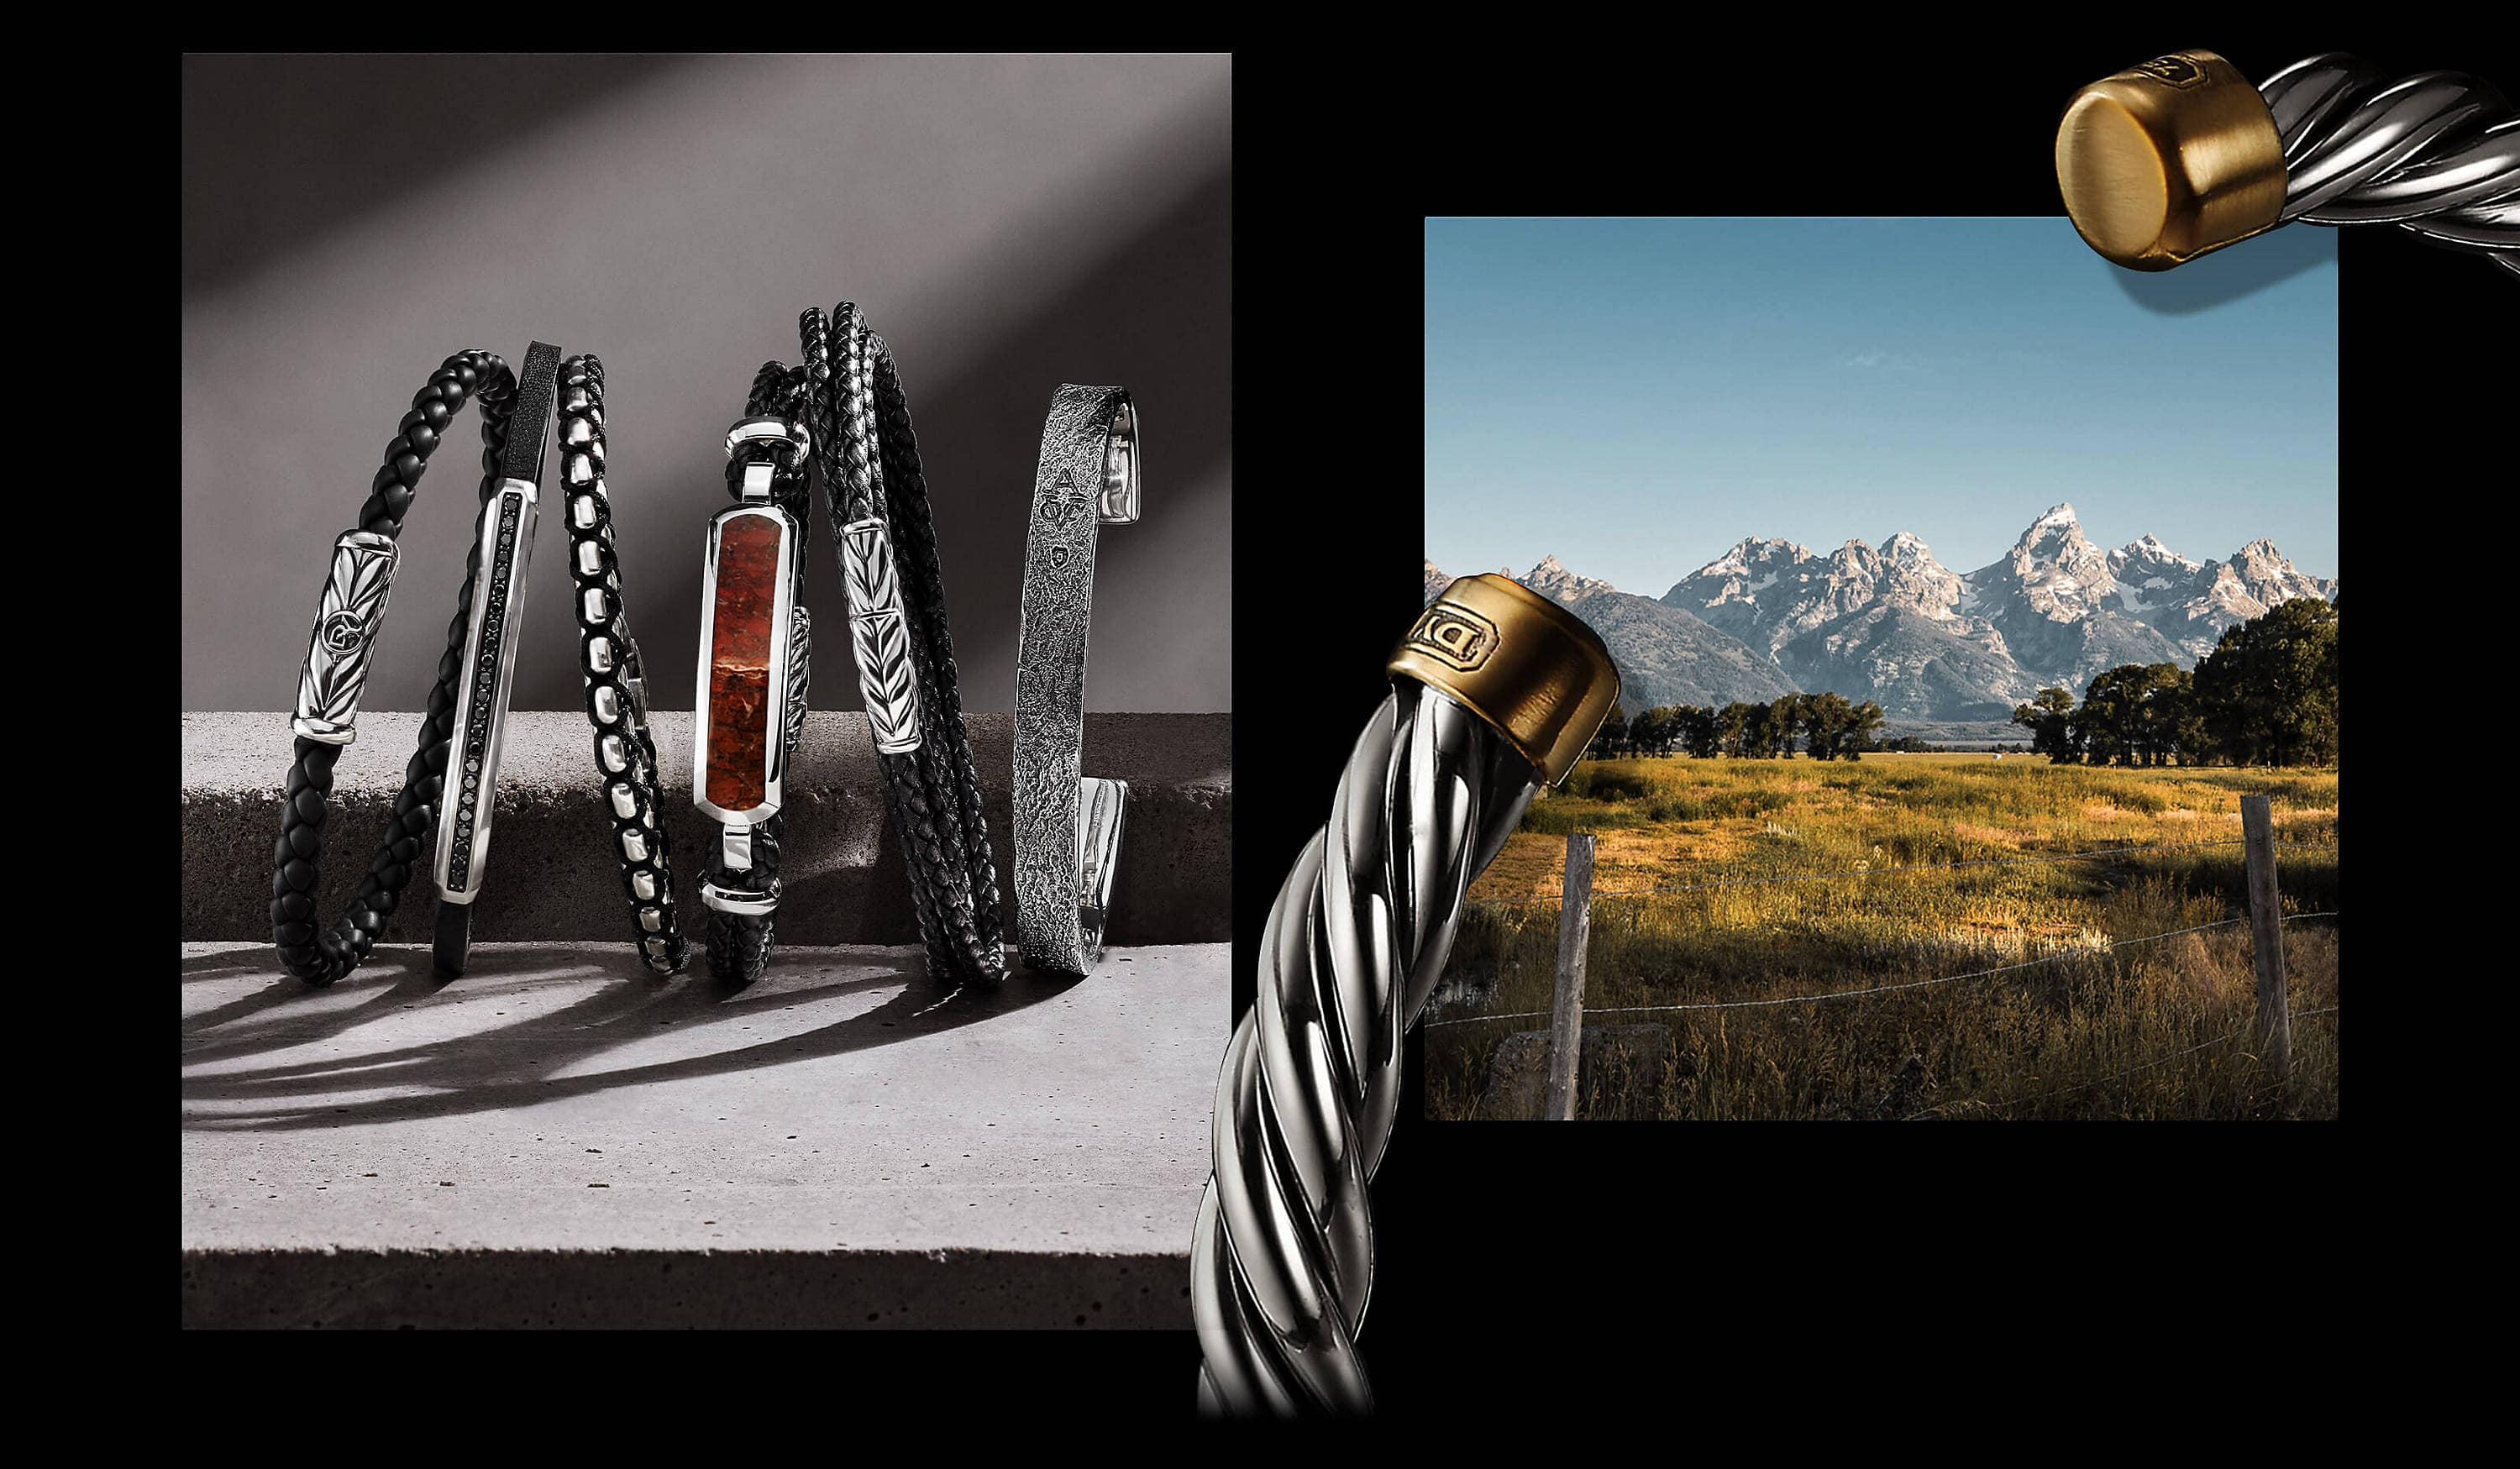 Two color photos are juxtaposed on a black background with white text. On the left is an image showing six David Yurman men's bracelets leaning against one another on a dark grey stone shelf with diagonal shadows. The jewelry is crafted from in sterling silver with or without black leather, nylon, diamonds and tiger's eye. On the right is a photo of a mountain landscape with a green field and trees. Draped in the corners of the right photo is a David Yurman men's Cable cuff bracelet in sterling silver with 18K gold end caps.